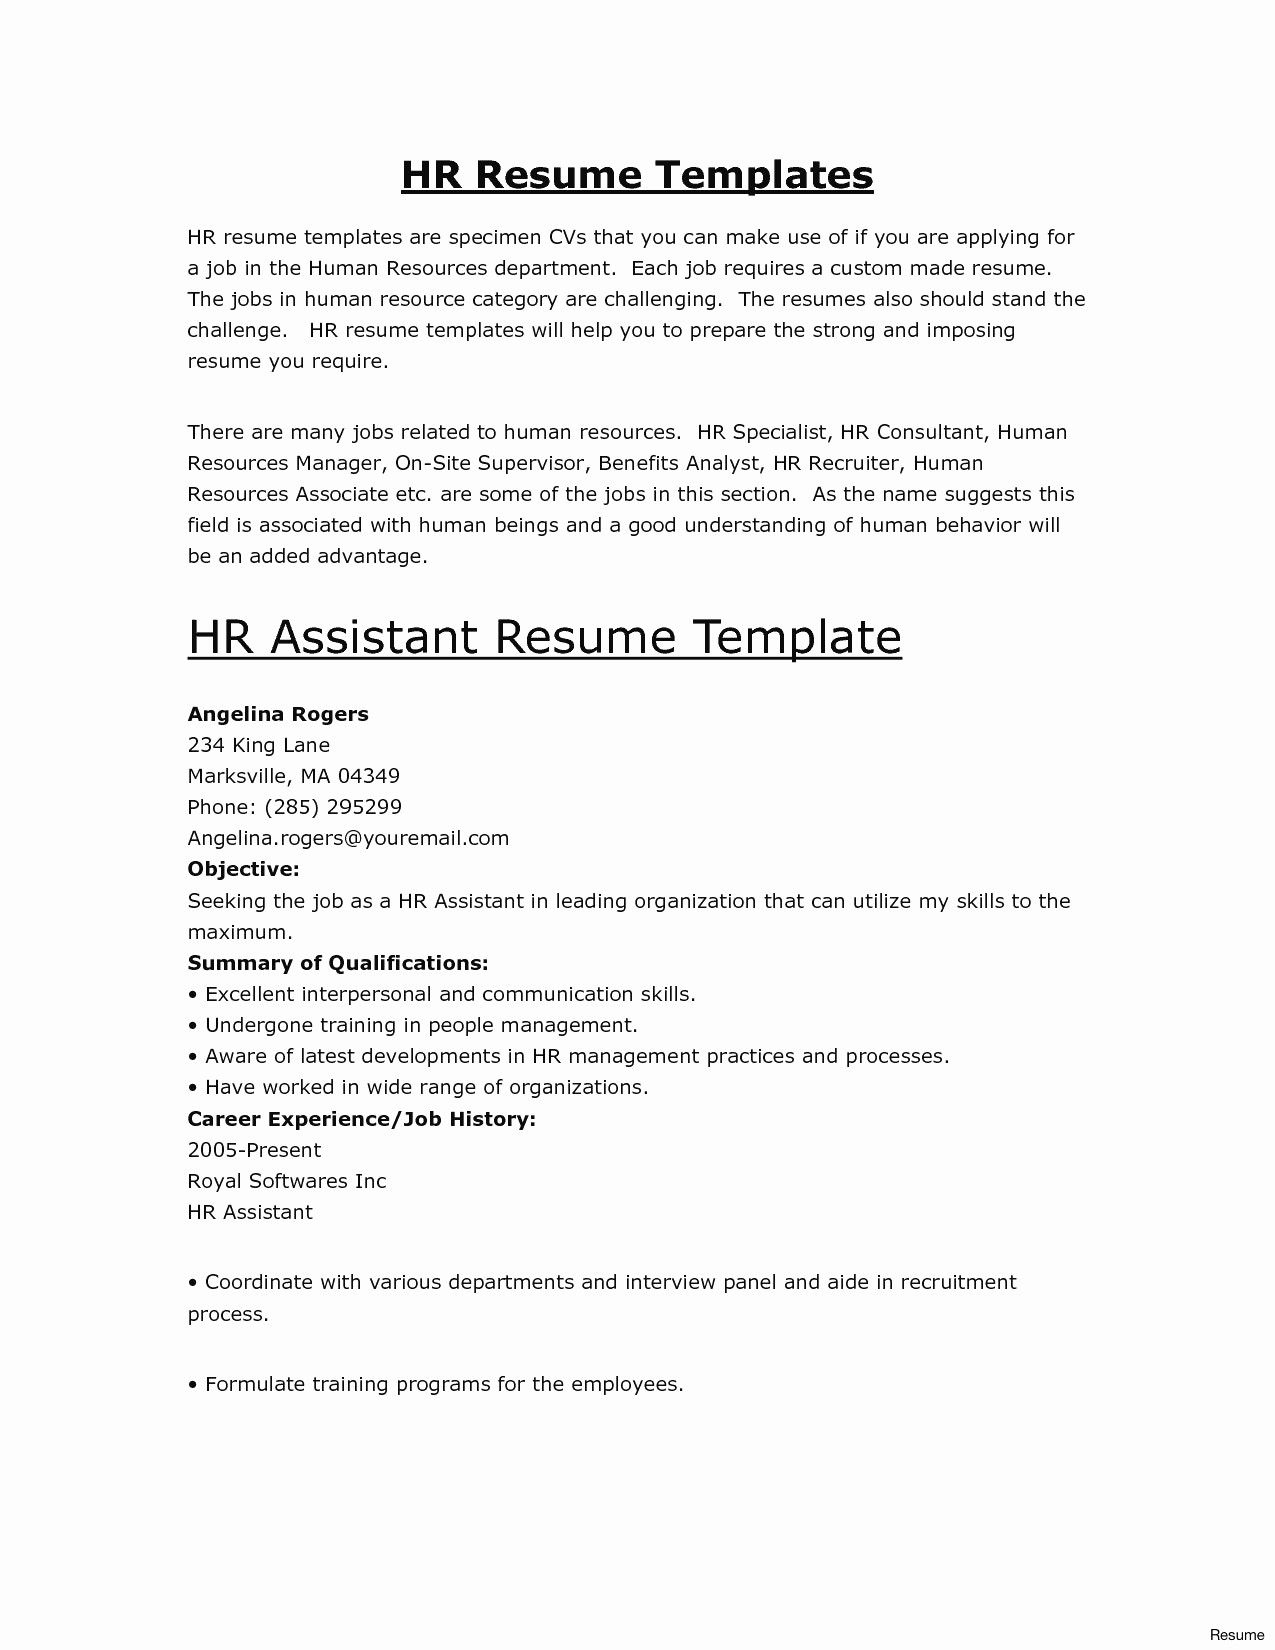 Free Employment Verification Letter Template - Inspirational Employment Verification Letter Template